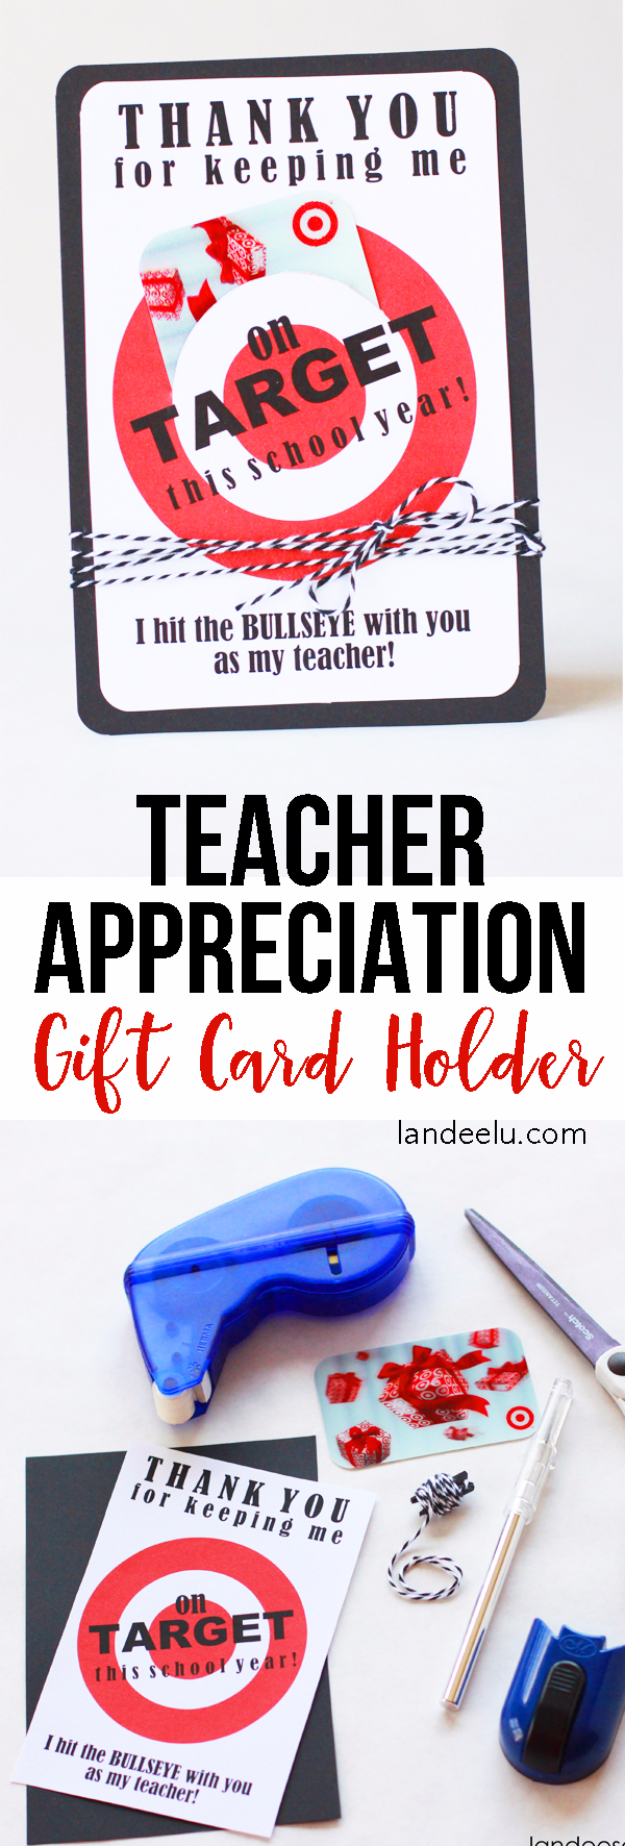 DIY Teacher Gifts - Target Gift Card Holder - Cheap and Easy Presents and DIY Gift Ideas for Teachers at Christmas, End of Year, First Day and Birthday - Teacher Appreciation Gifts and Crafts - Cute Mason Jar Ideas and Thoughtful, Unique Gifts from Kids http://diyjoy.com/diy-teacher-gifts